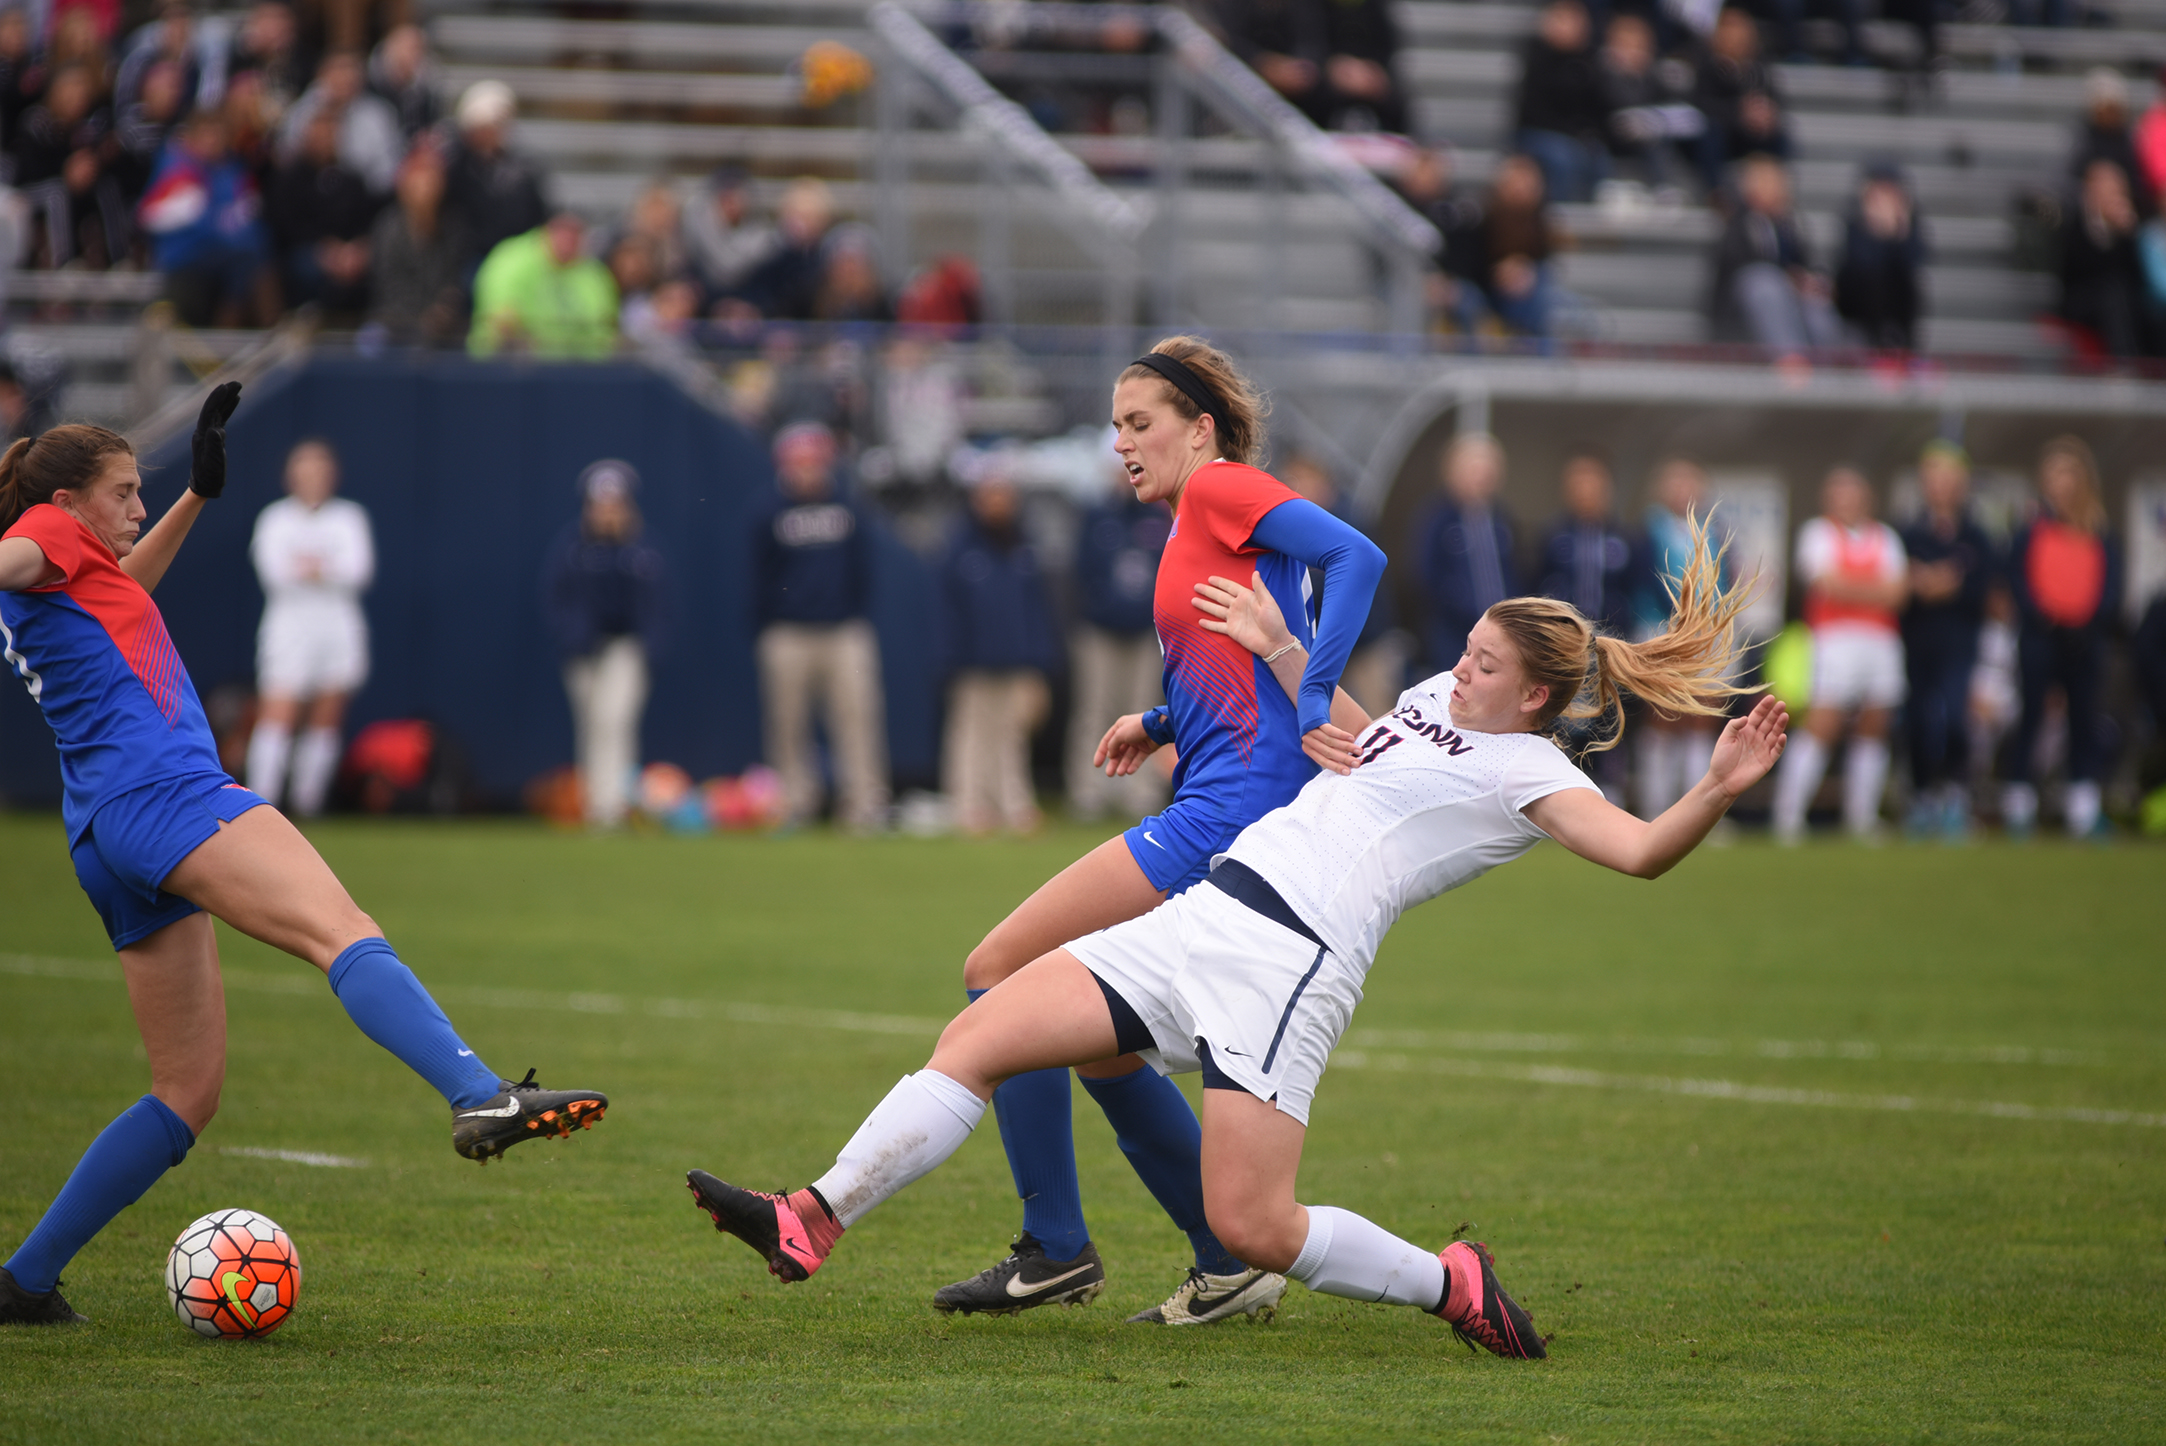 UConn freshman forward Kim Urbanek makes a tackle during the Huskies' game against SMU on Sunday, Oct. 25, 2015. The team opens NCAA Tournament play Sunday at Joseph J. Morrone Stadium against Siena. (Allen Lang/The Daily Campus)